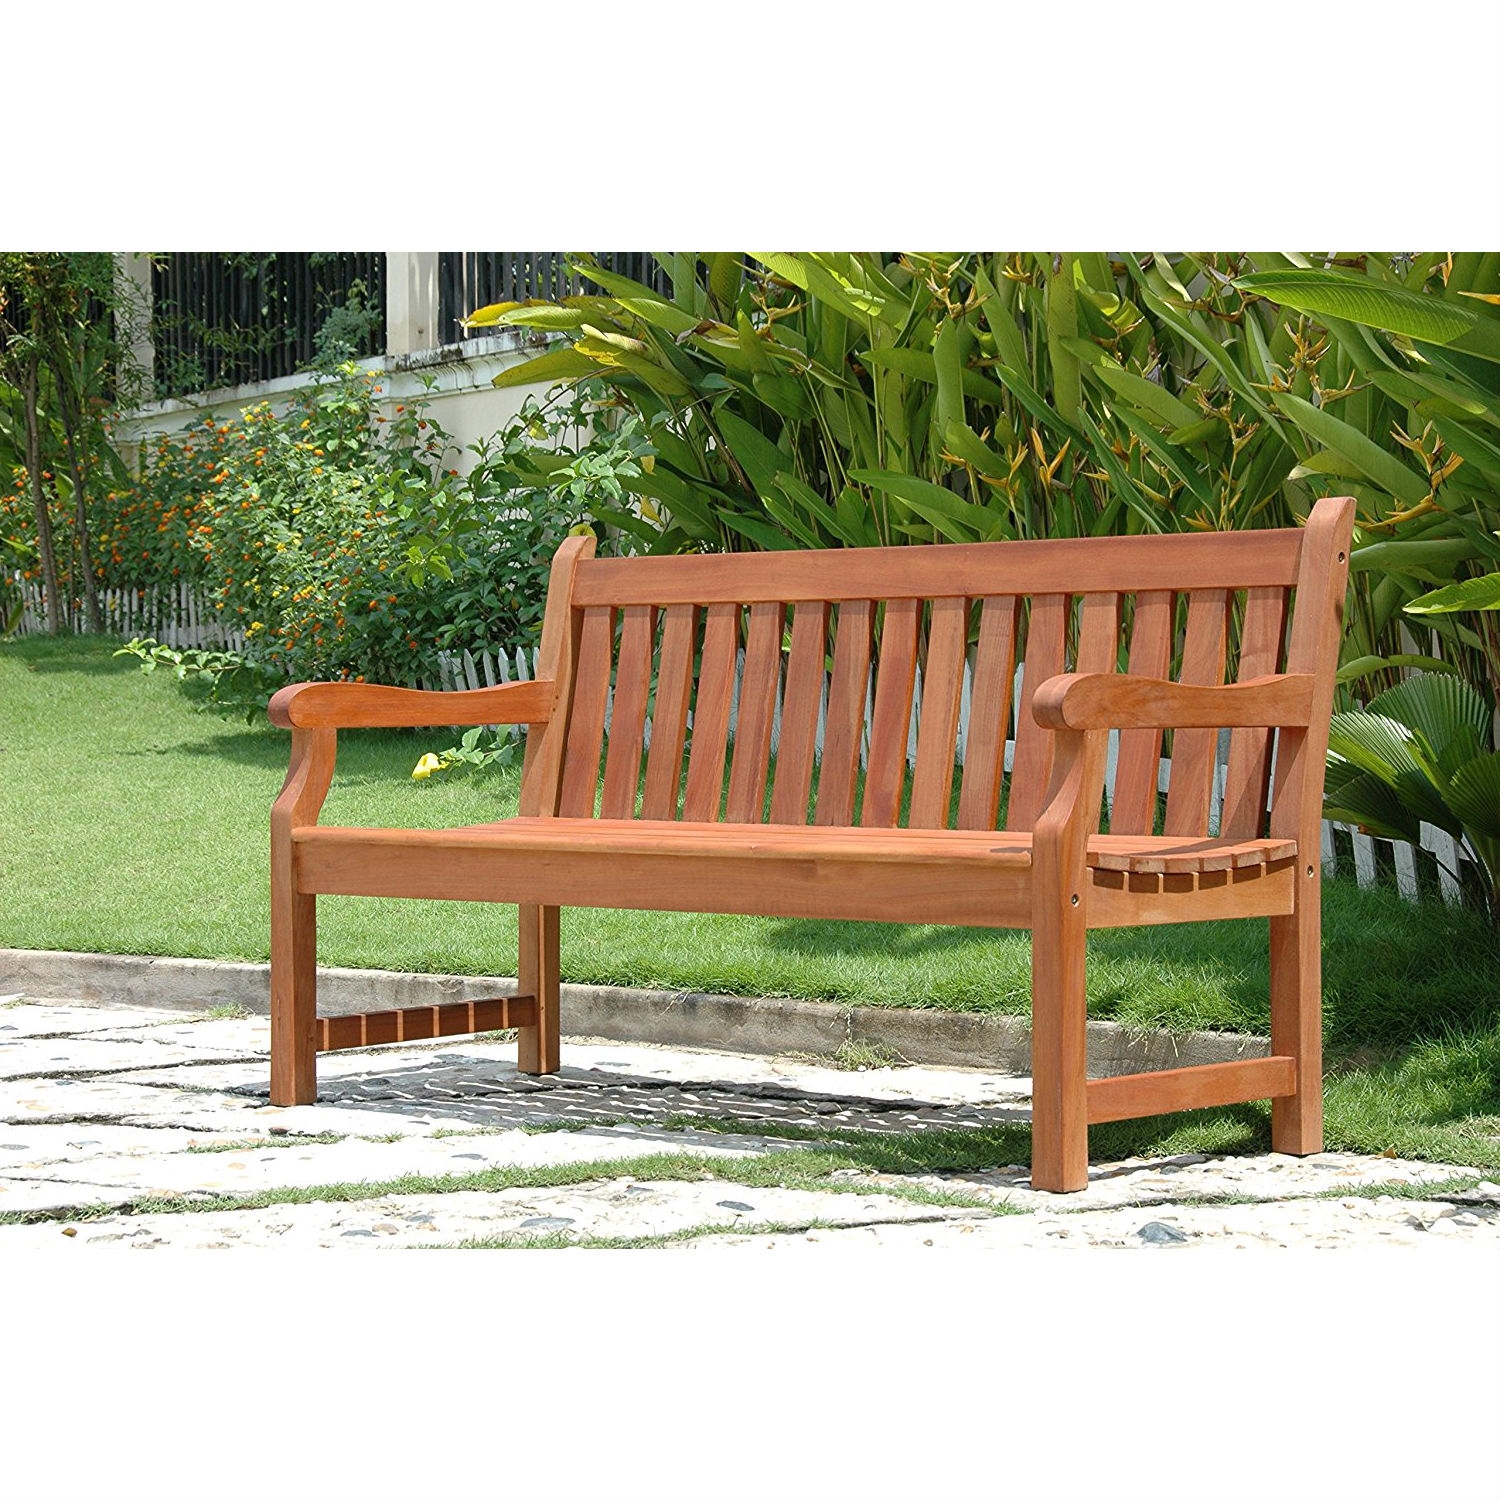 Nice Outdoor Eucalyptus Wood 5 Ft Garden Bench With Natural Finish